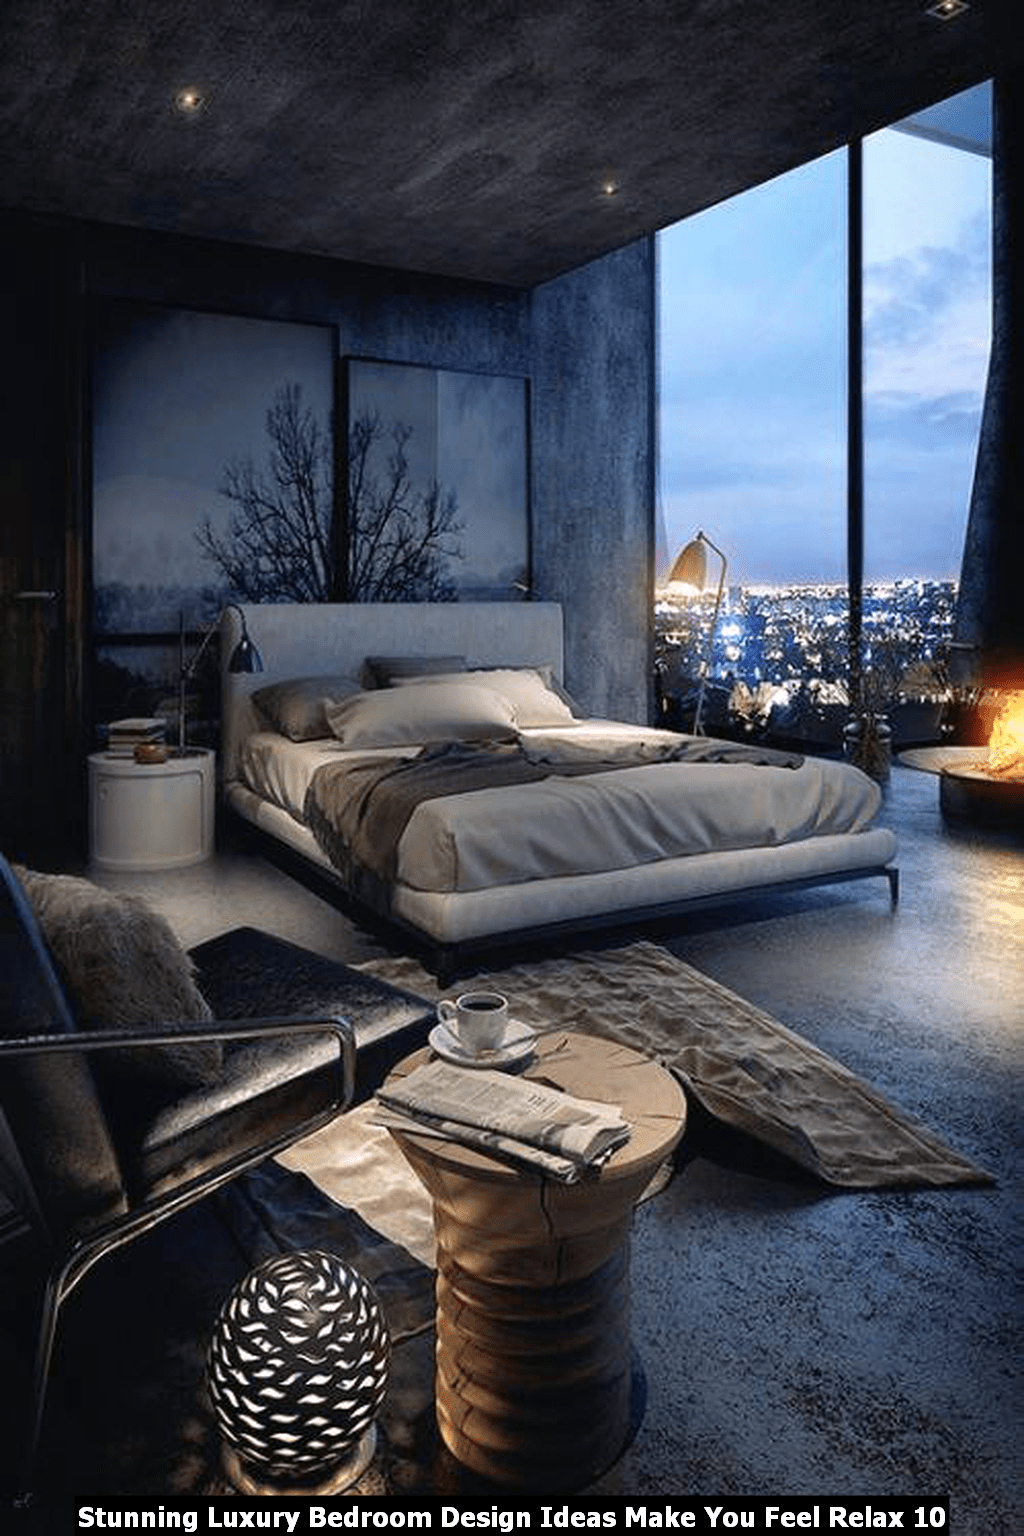 Stunning Luxury Bedroom Design Ideas Make You Feel Relax 10